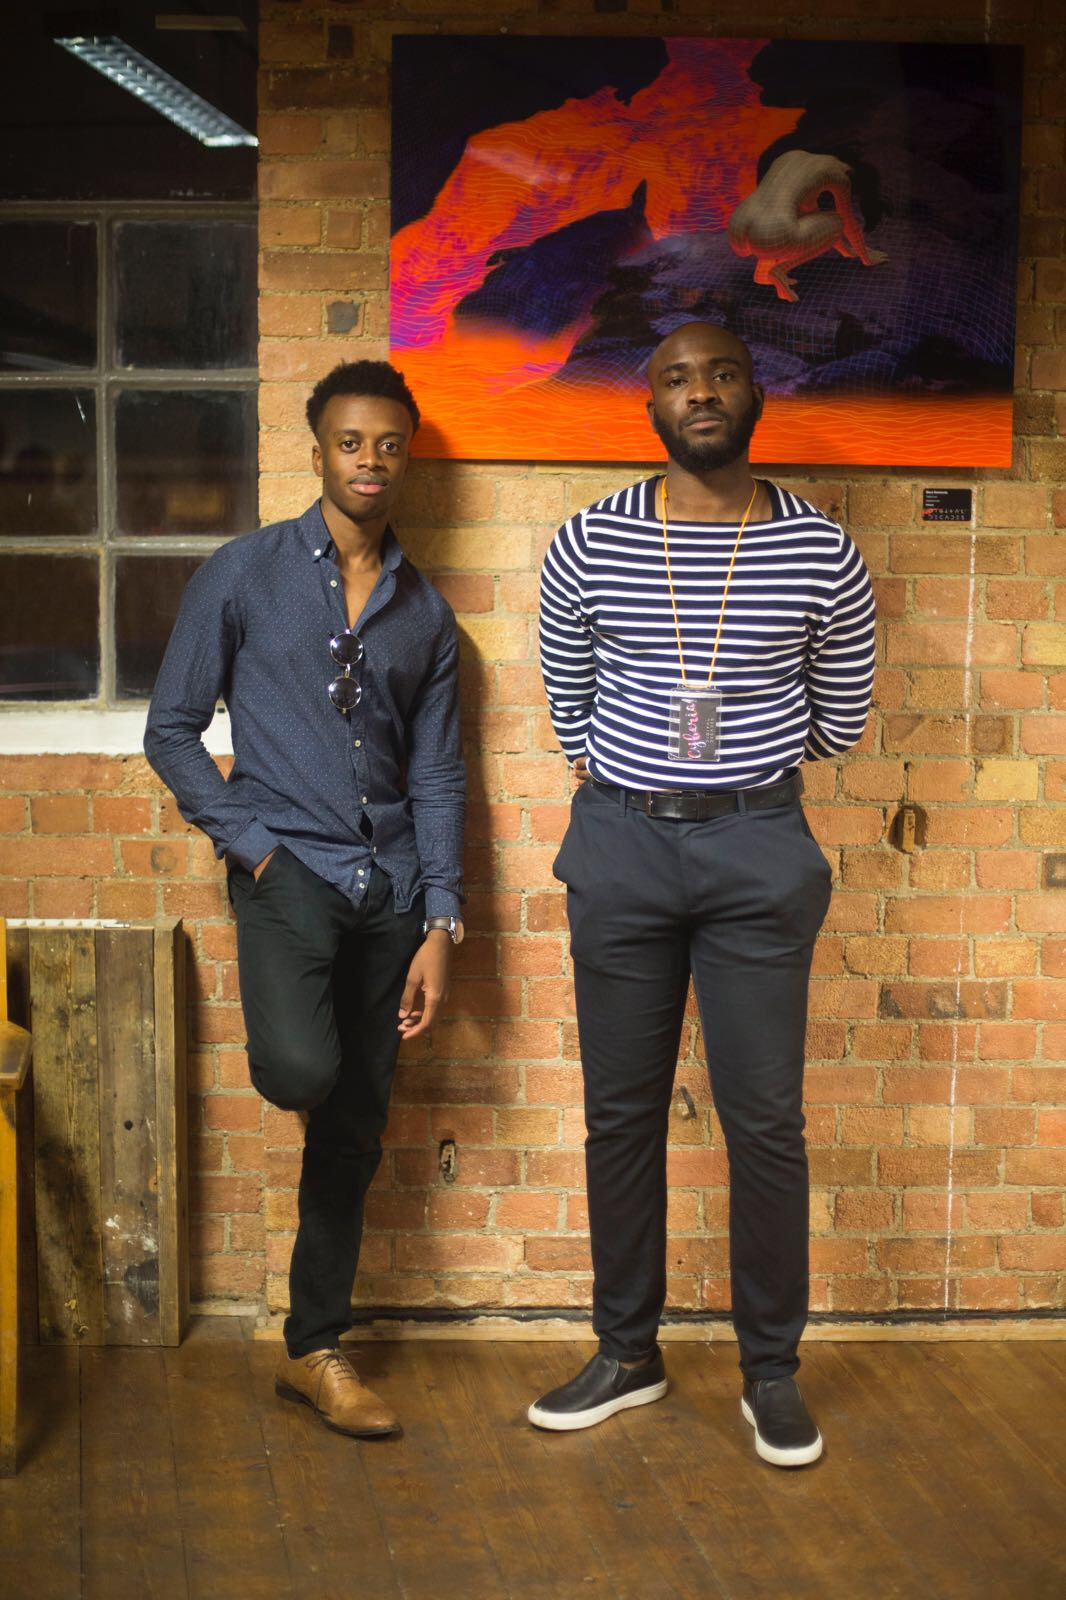 (on the right) Ope Deyileka, Art Director of the Event